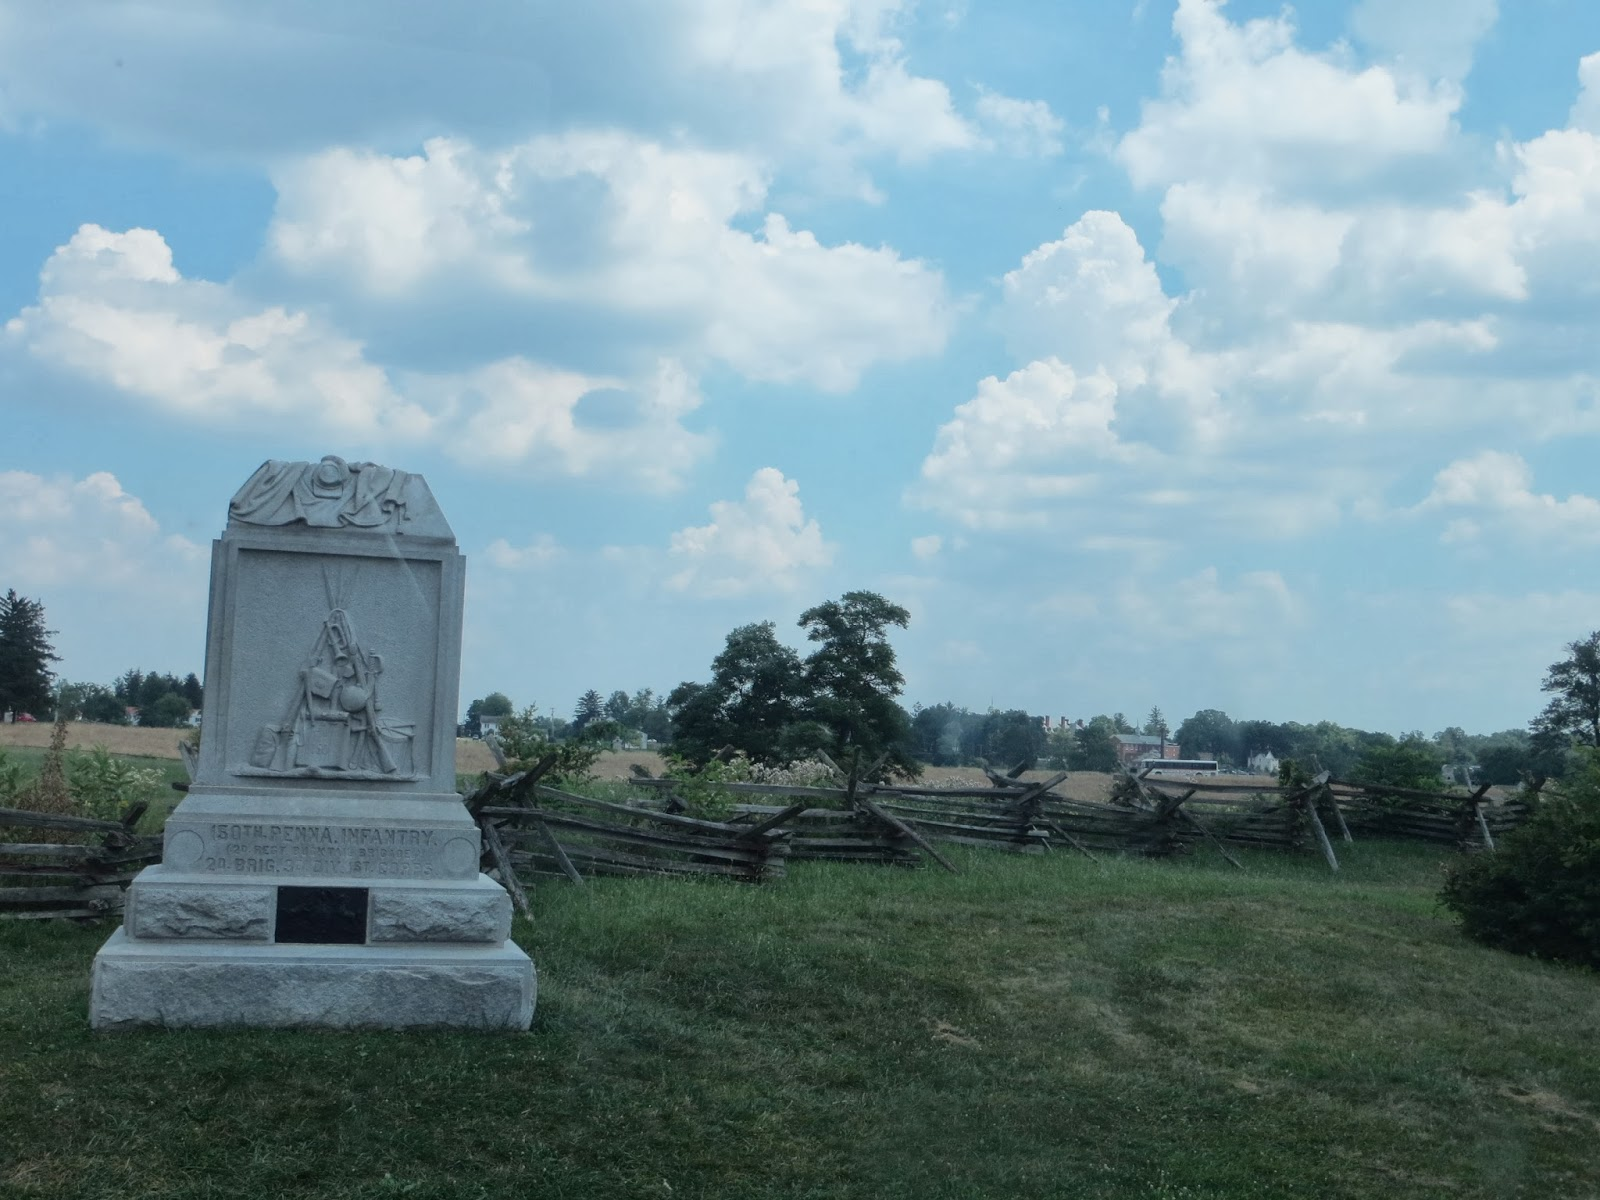 will write travel photo essay gettysburg national military park in i had the opportunity to gettysburg national military park this year marked the 150th anniversary of the battle of gettysburg of the